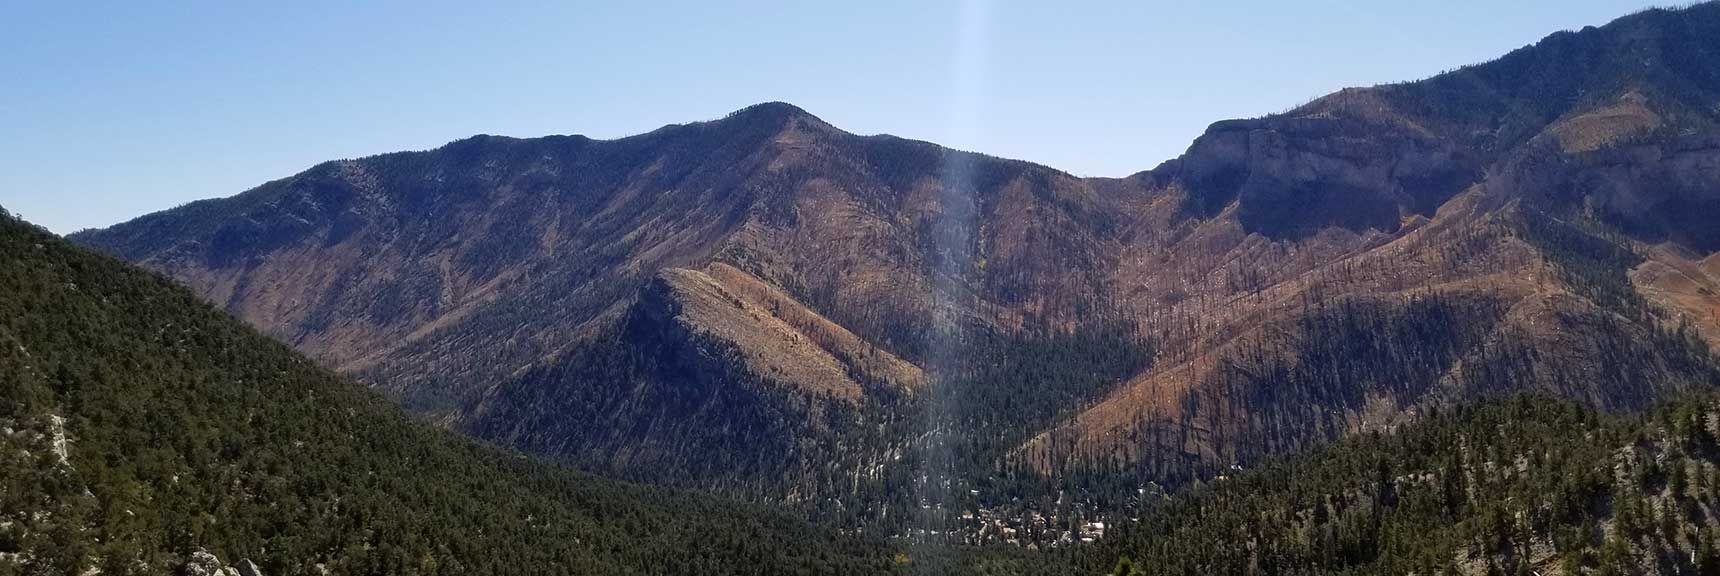 Harris Mountain as Frame of Reference on the Return Trip from Cockscomb Peak and Ridge in Mt. Charleston Wilderness, Nevada